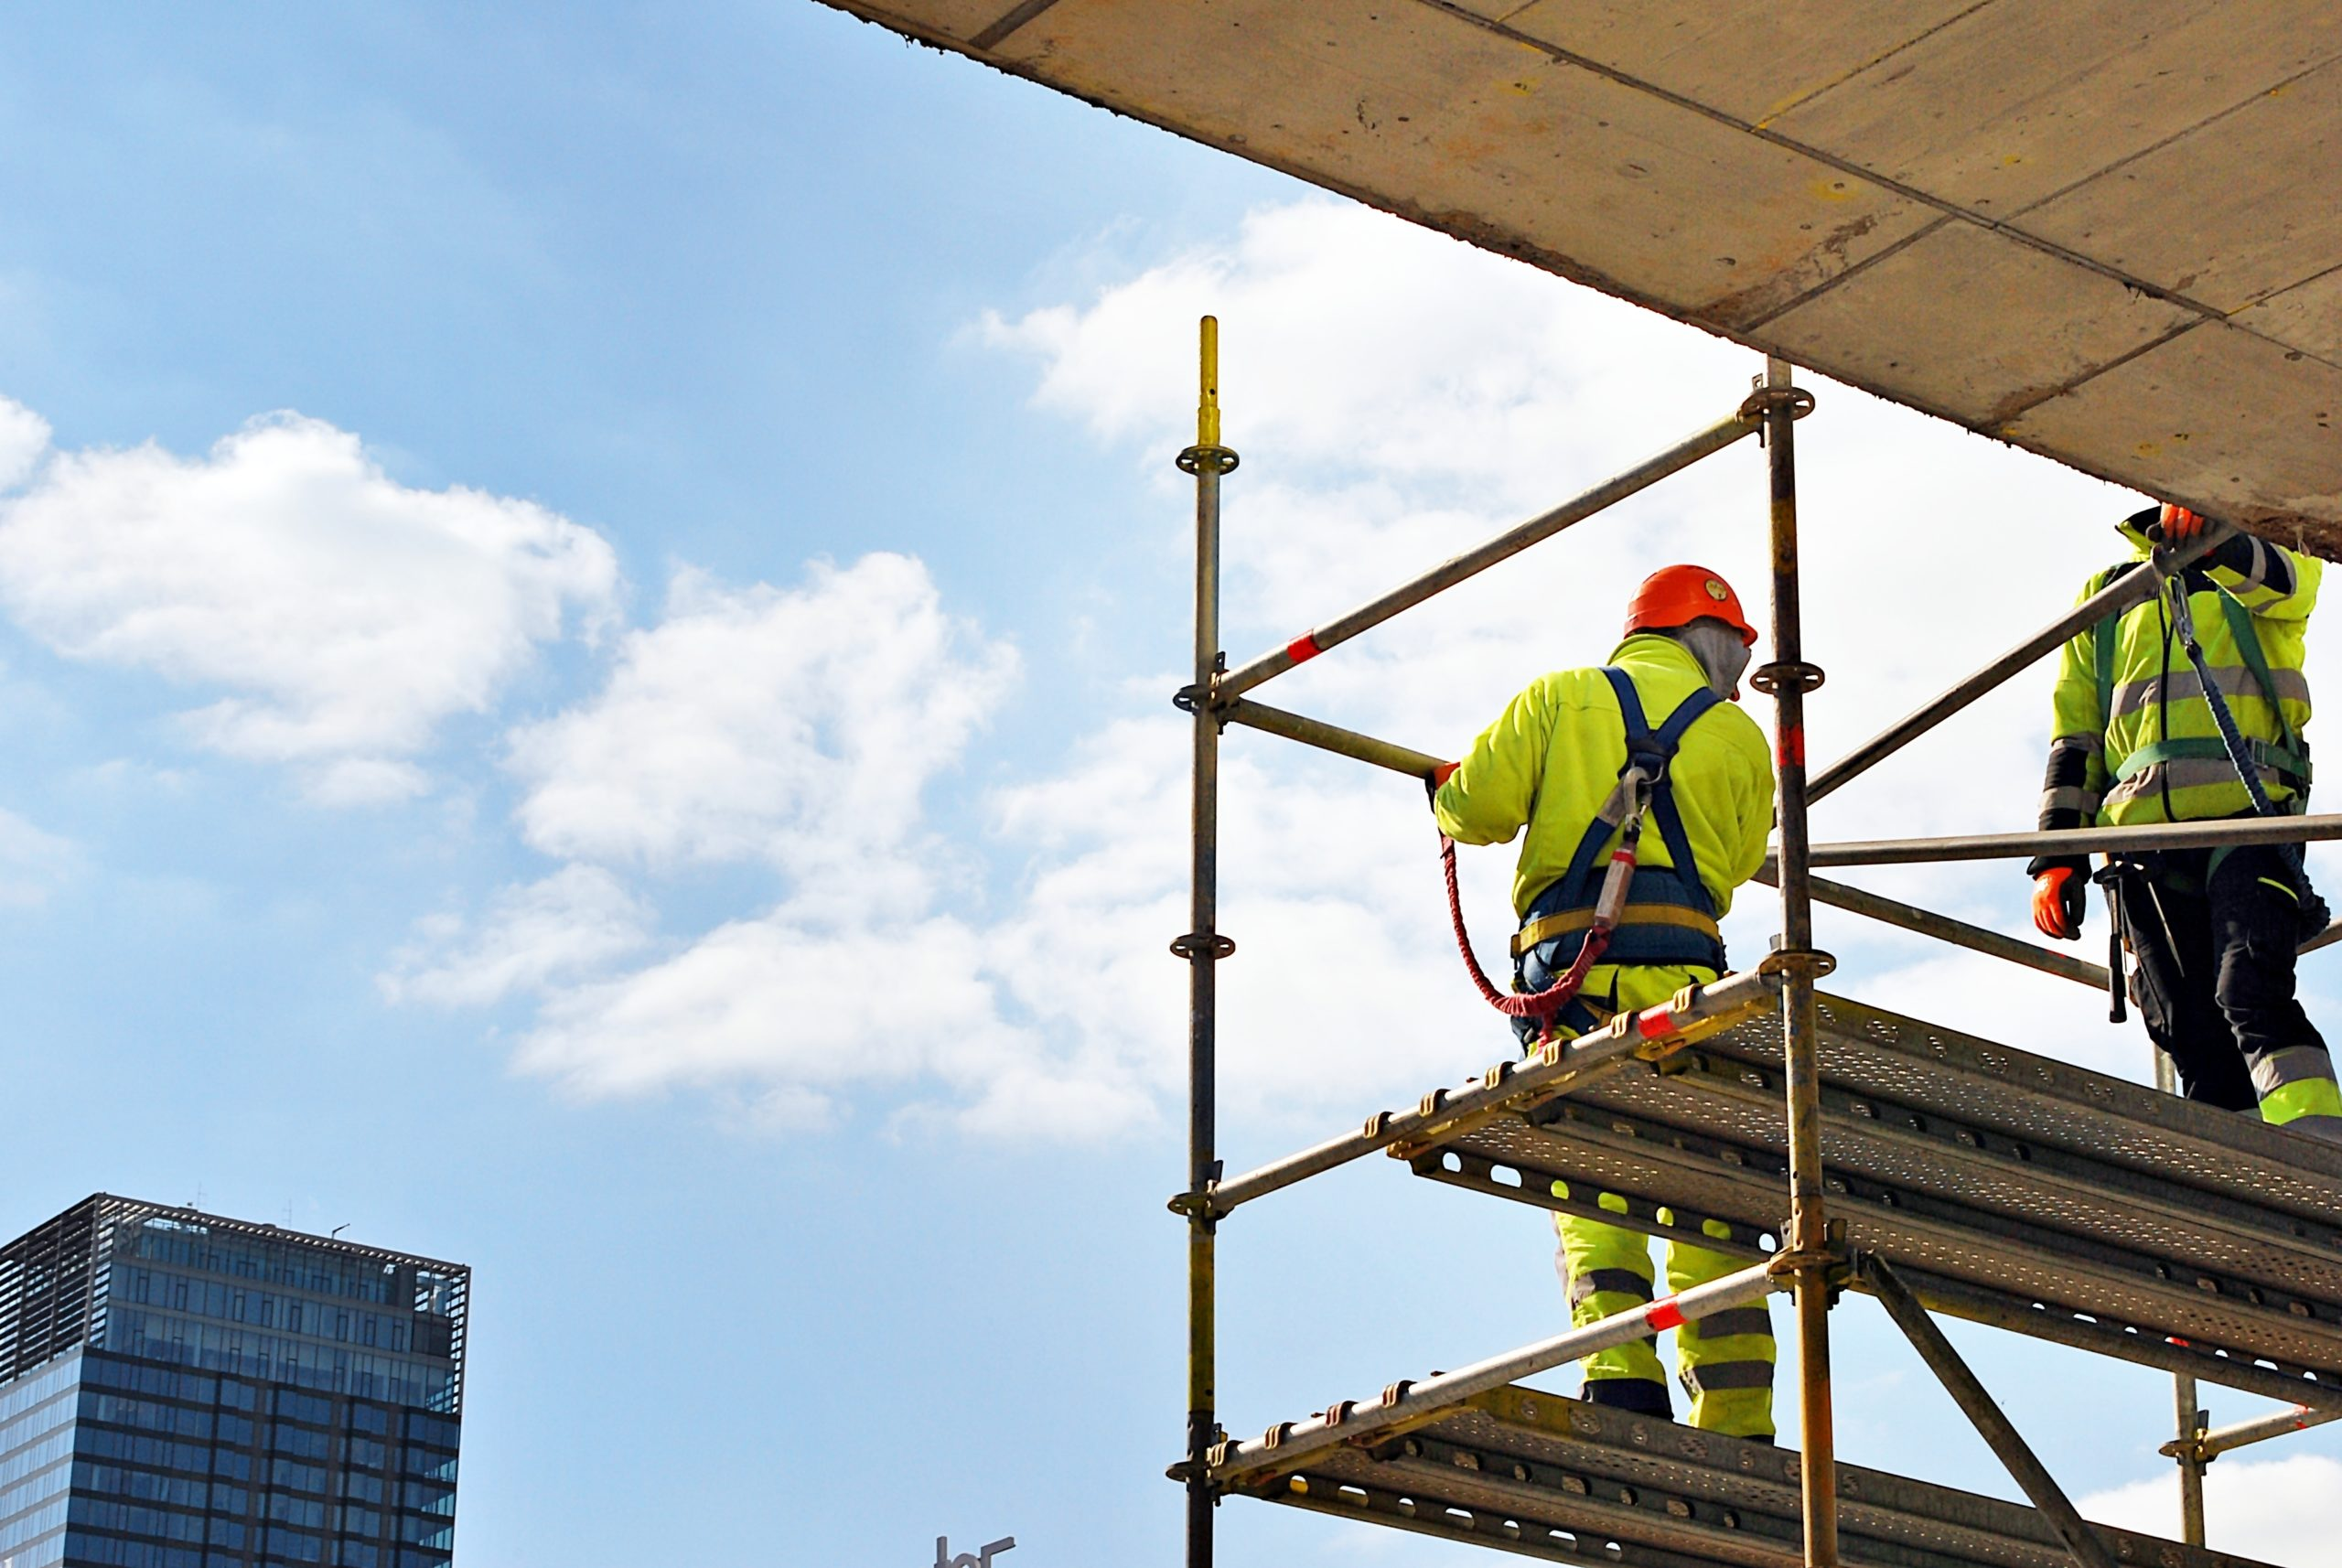 Falls from Scaffolding in Construction: Protections and More